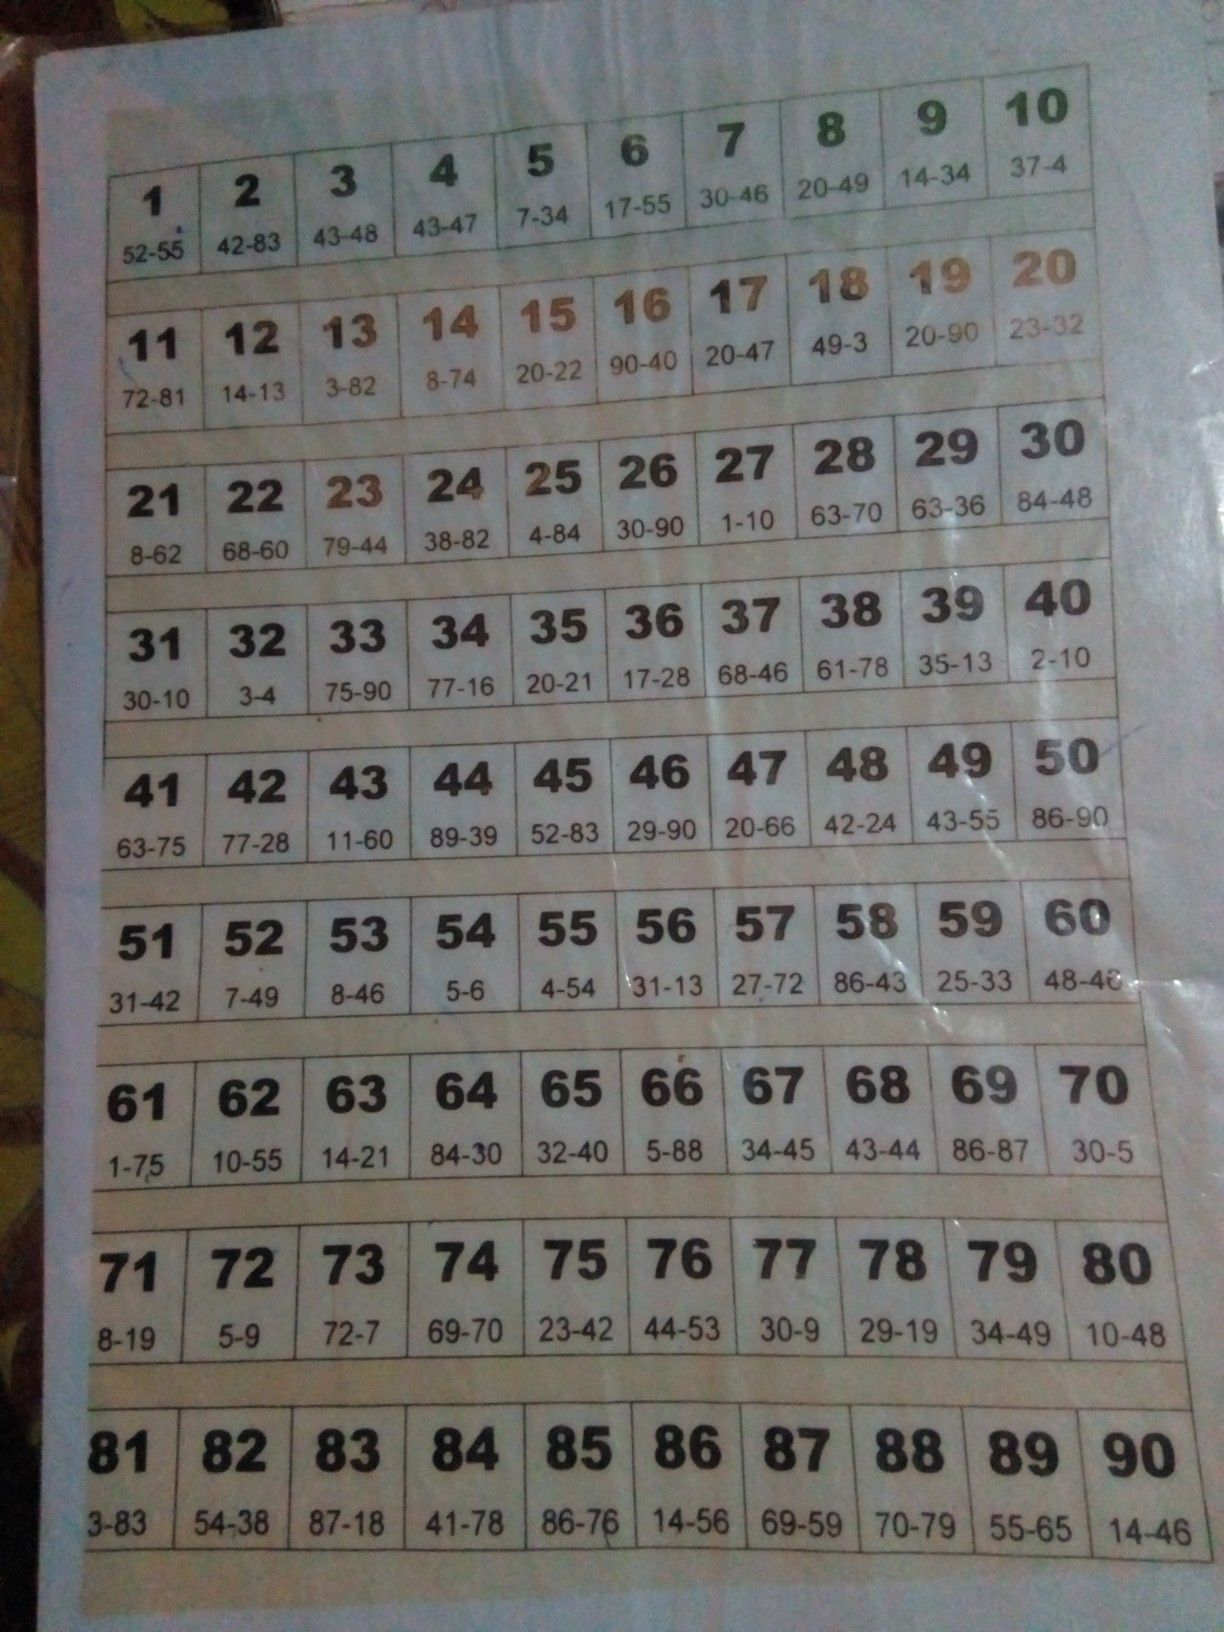 Pin By Ivana Paramo Gutierrez On Numero Loteria In 2021 Lucky Numbers For Lottery Lottery Numbers Daily Lottery Numbers